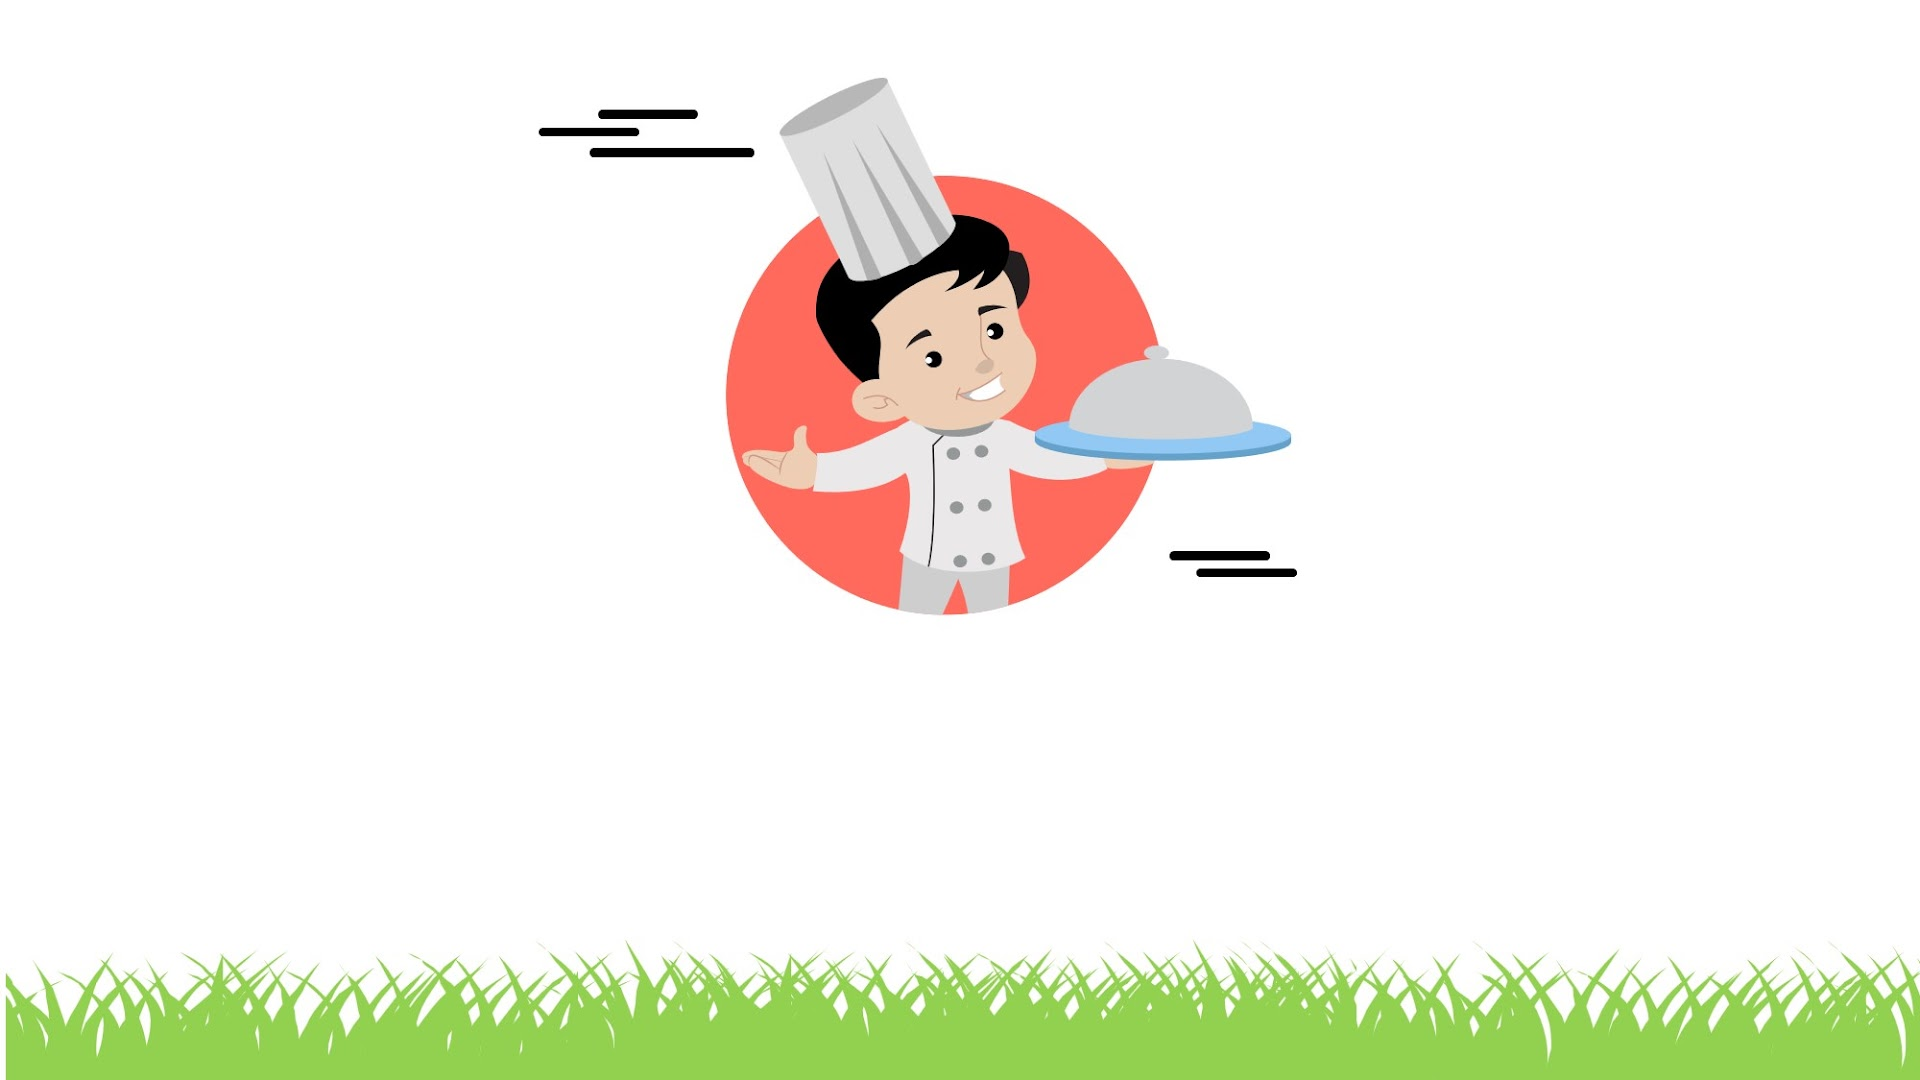 Cartoon chef - free background for Presentations